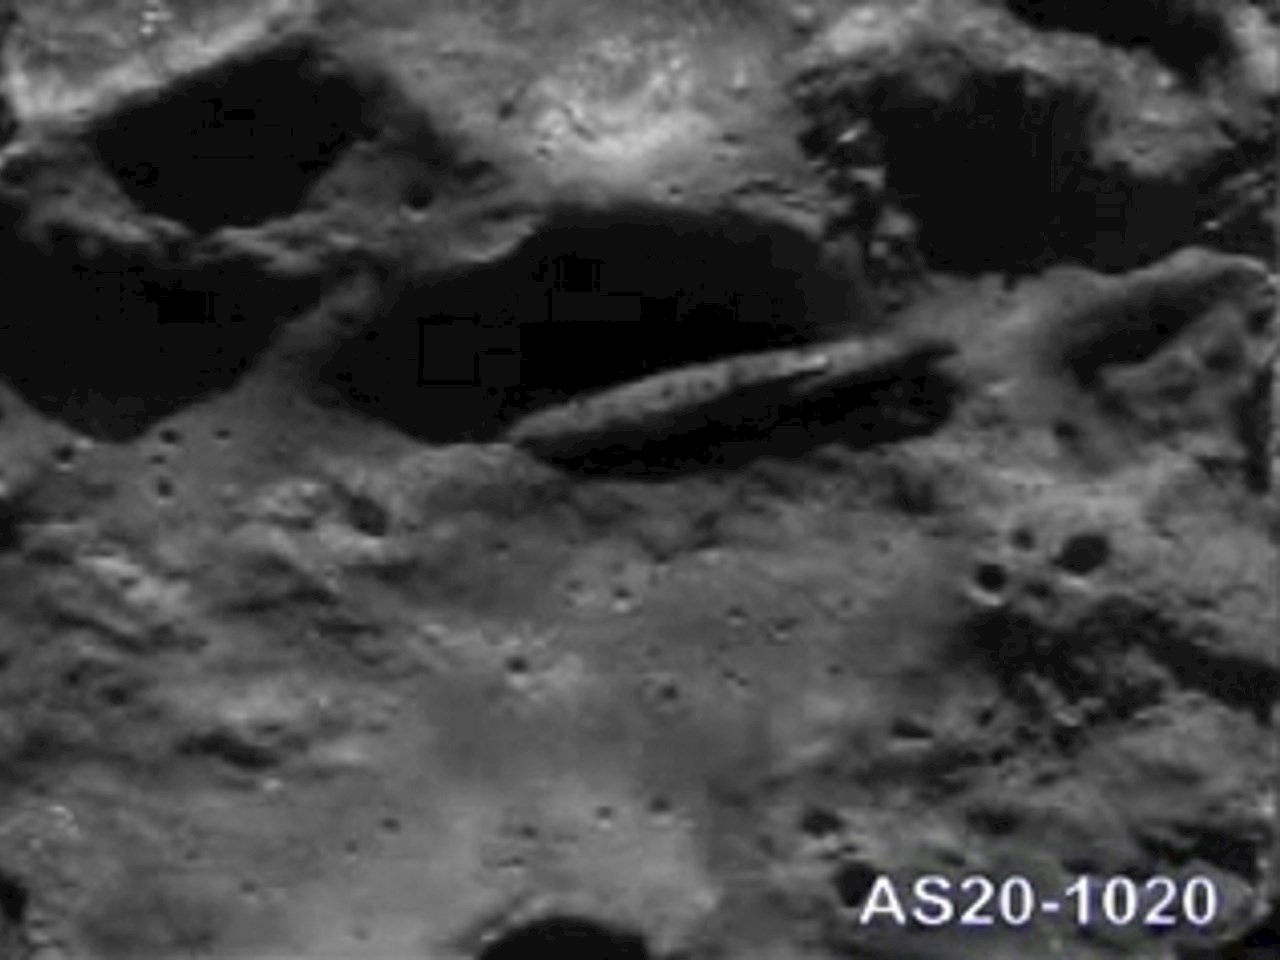 Presumed photo taken by Apollo 20 crew in August 1976